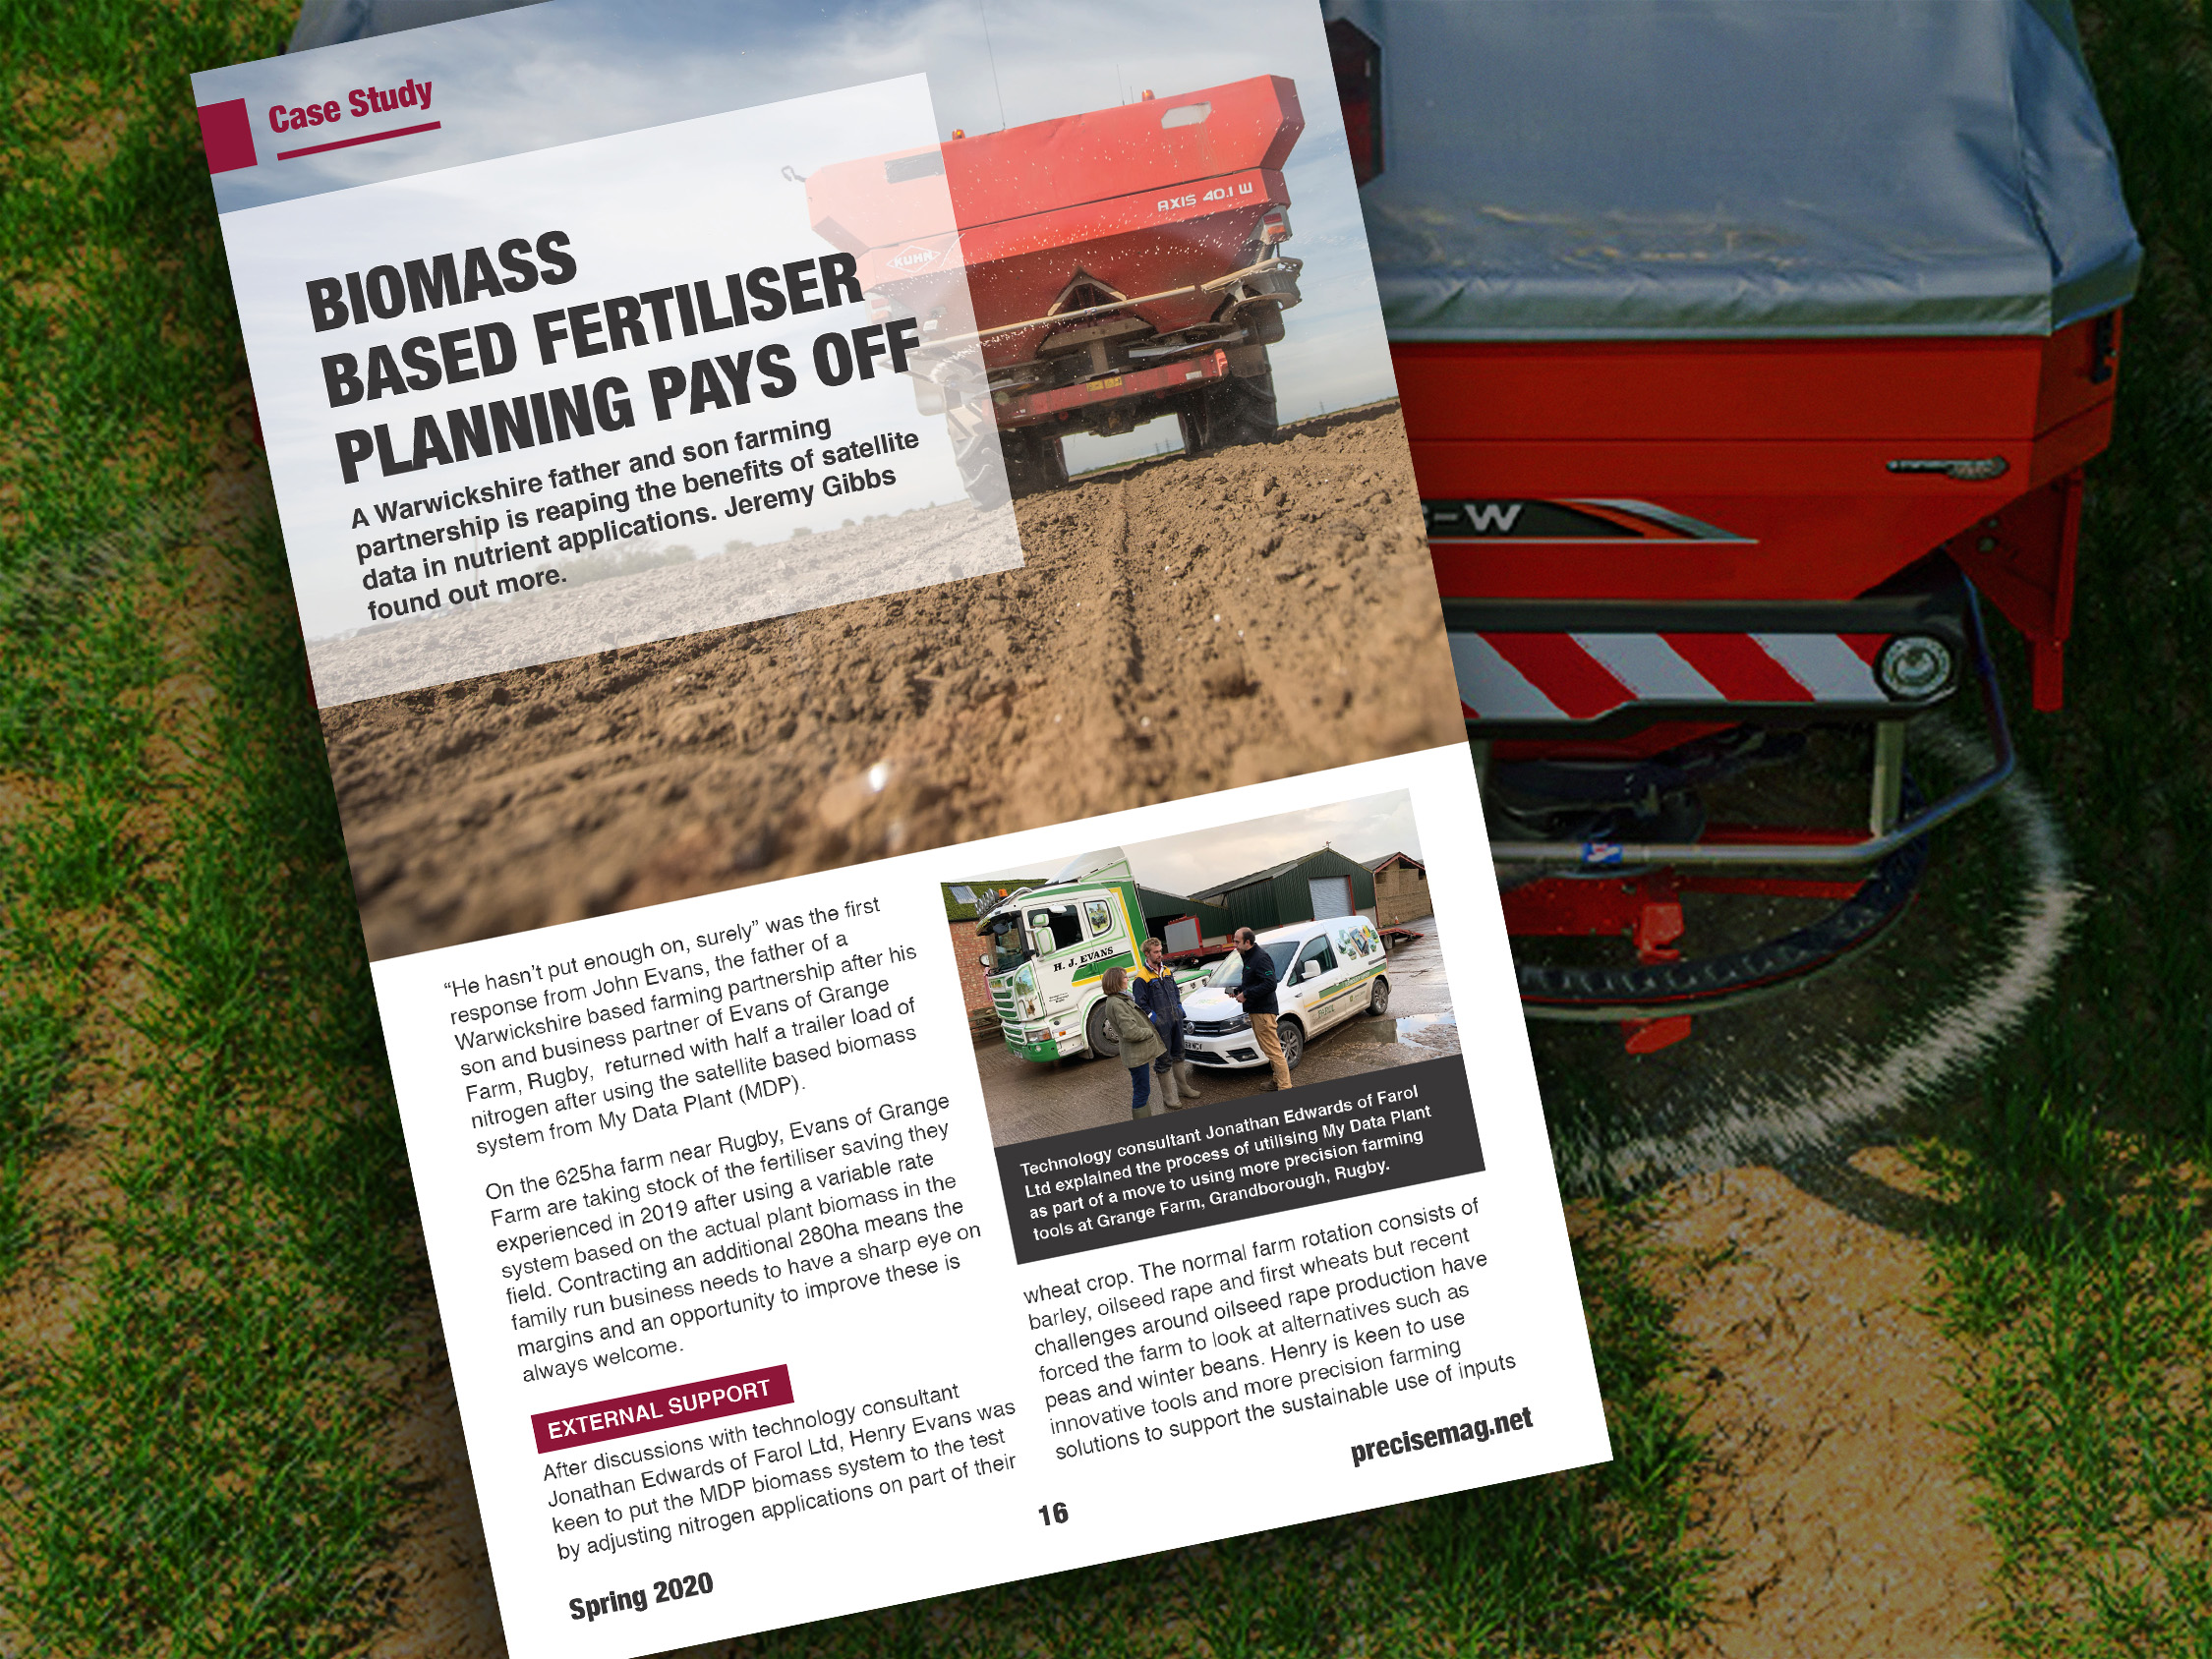 100 tons of nitrogen saved using My Data Plant: A split farm trial in the Precise Magazine (UK)